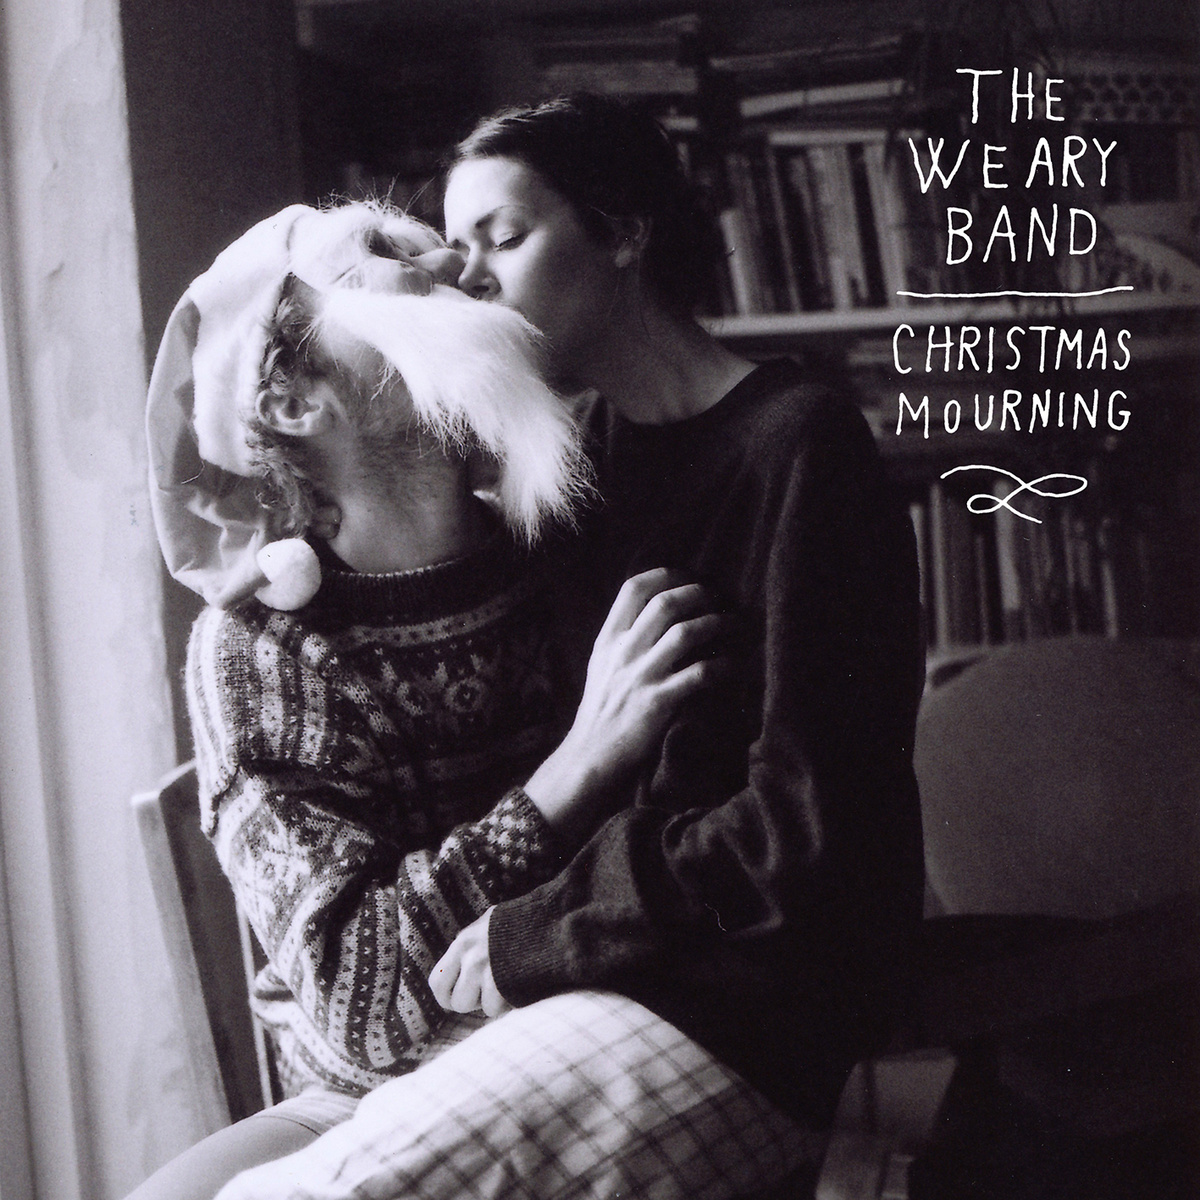 The Weary Band - Christmas Mourning